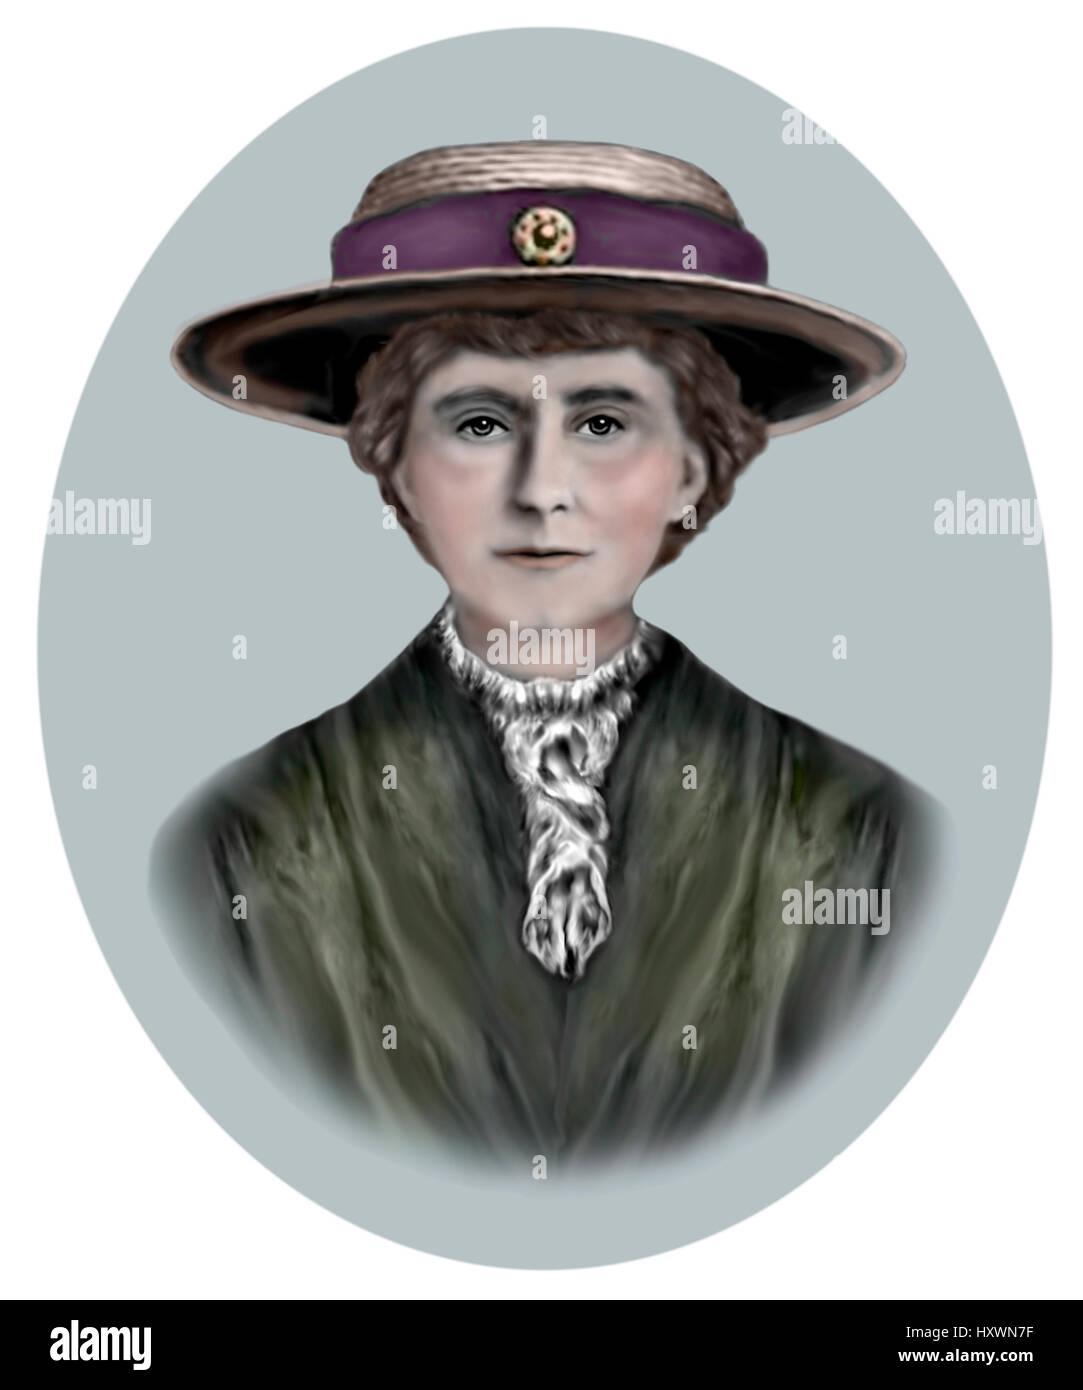 emily davison Media in category emily davison the following 22 files are in this category, out of 22 total.